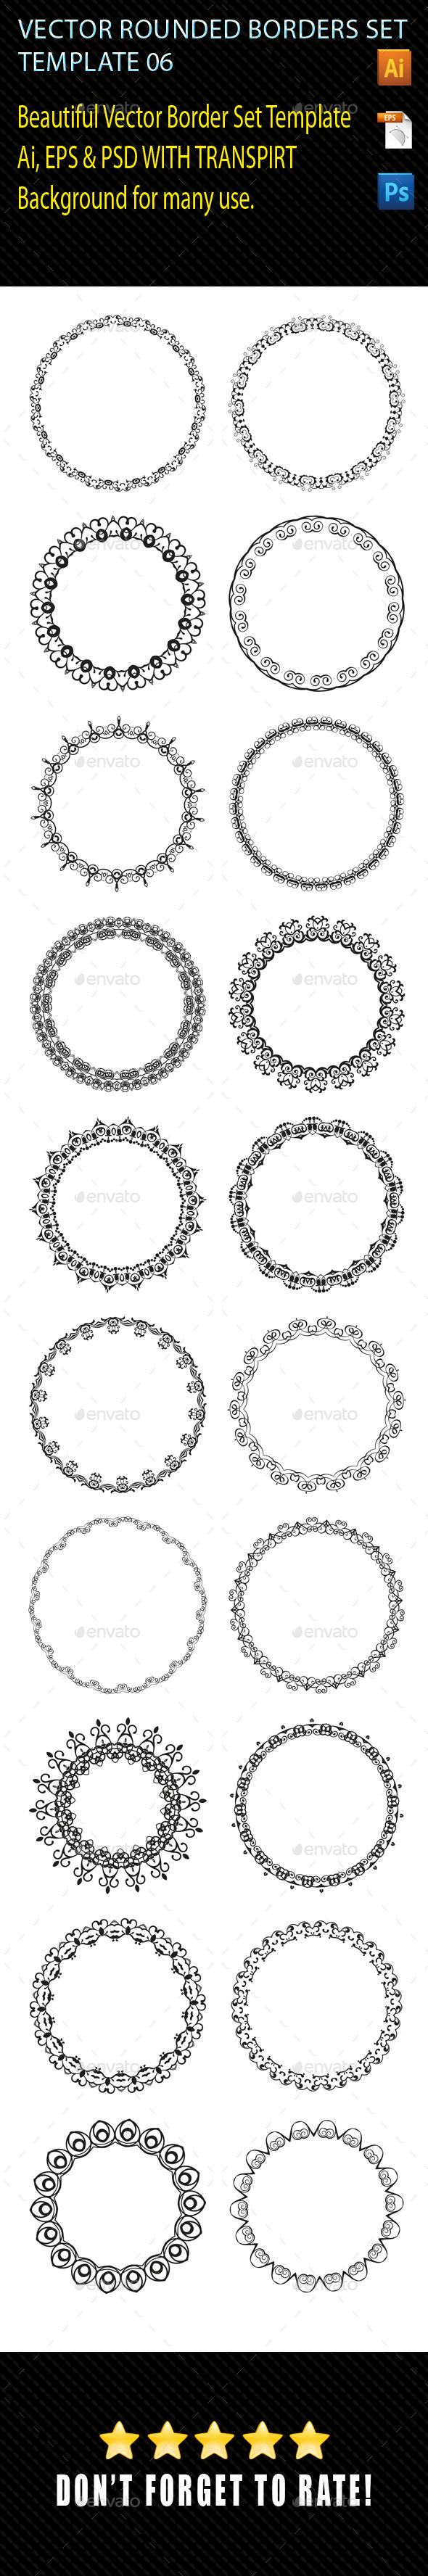 Vector Rounded Borders Template 06 - Borders Decorative